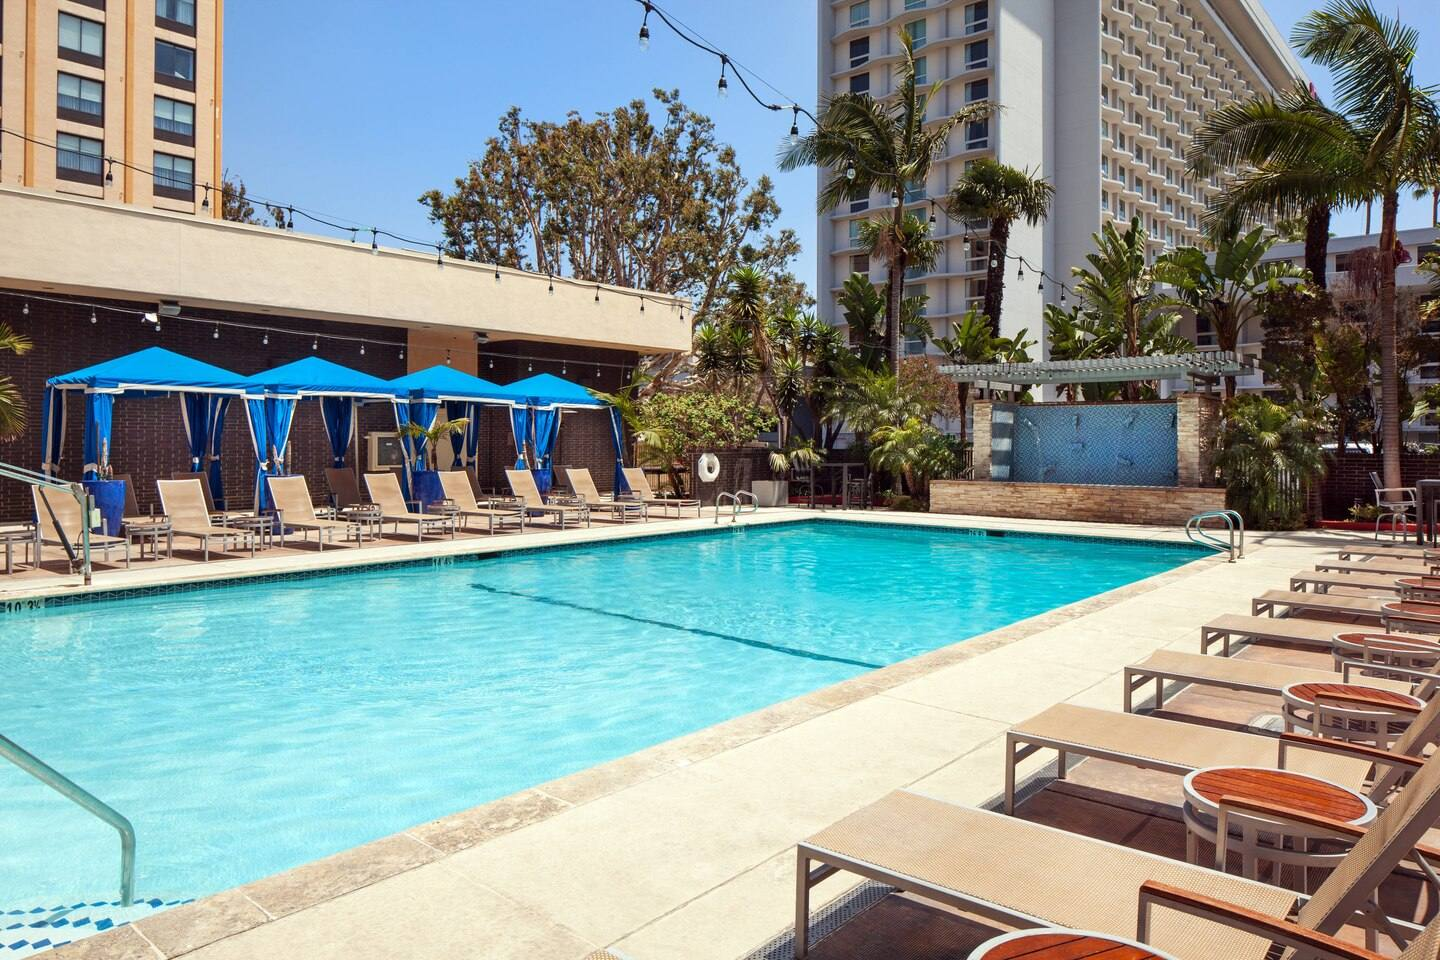 Outdoor Pool at the Four Points by Sheraton LAX